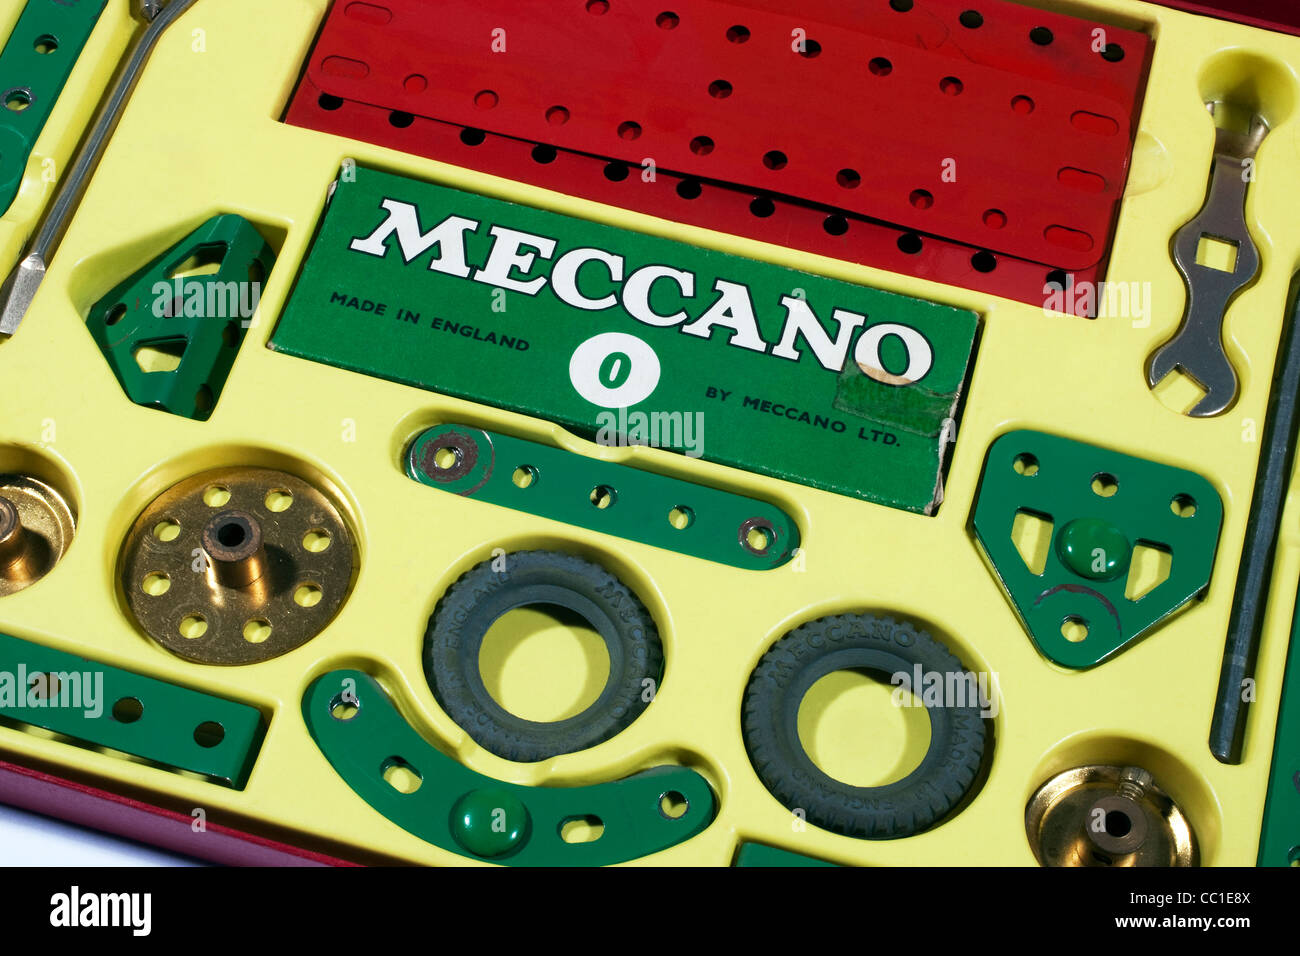 Meccano construction parts used to build working models and mechanical devices invented by Frank Hornby in 1901 - Stock Image